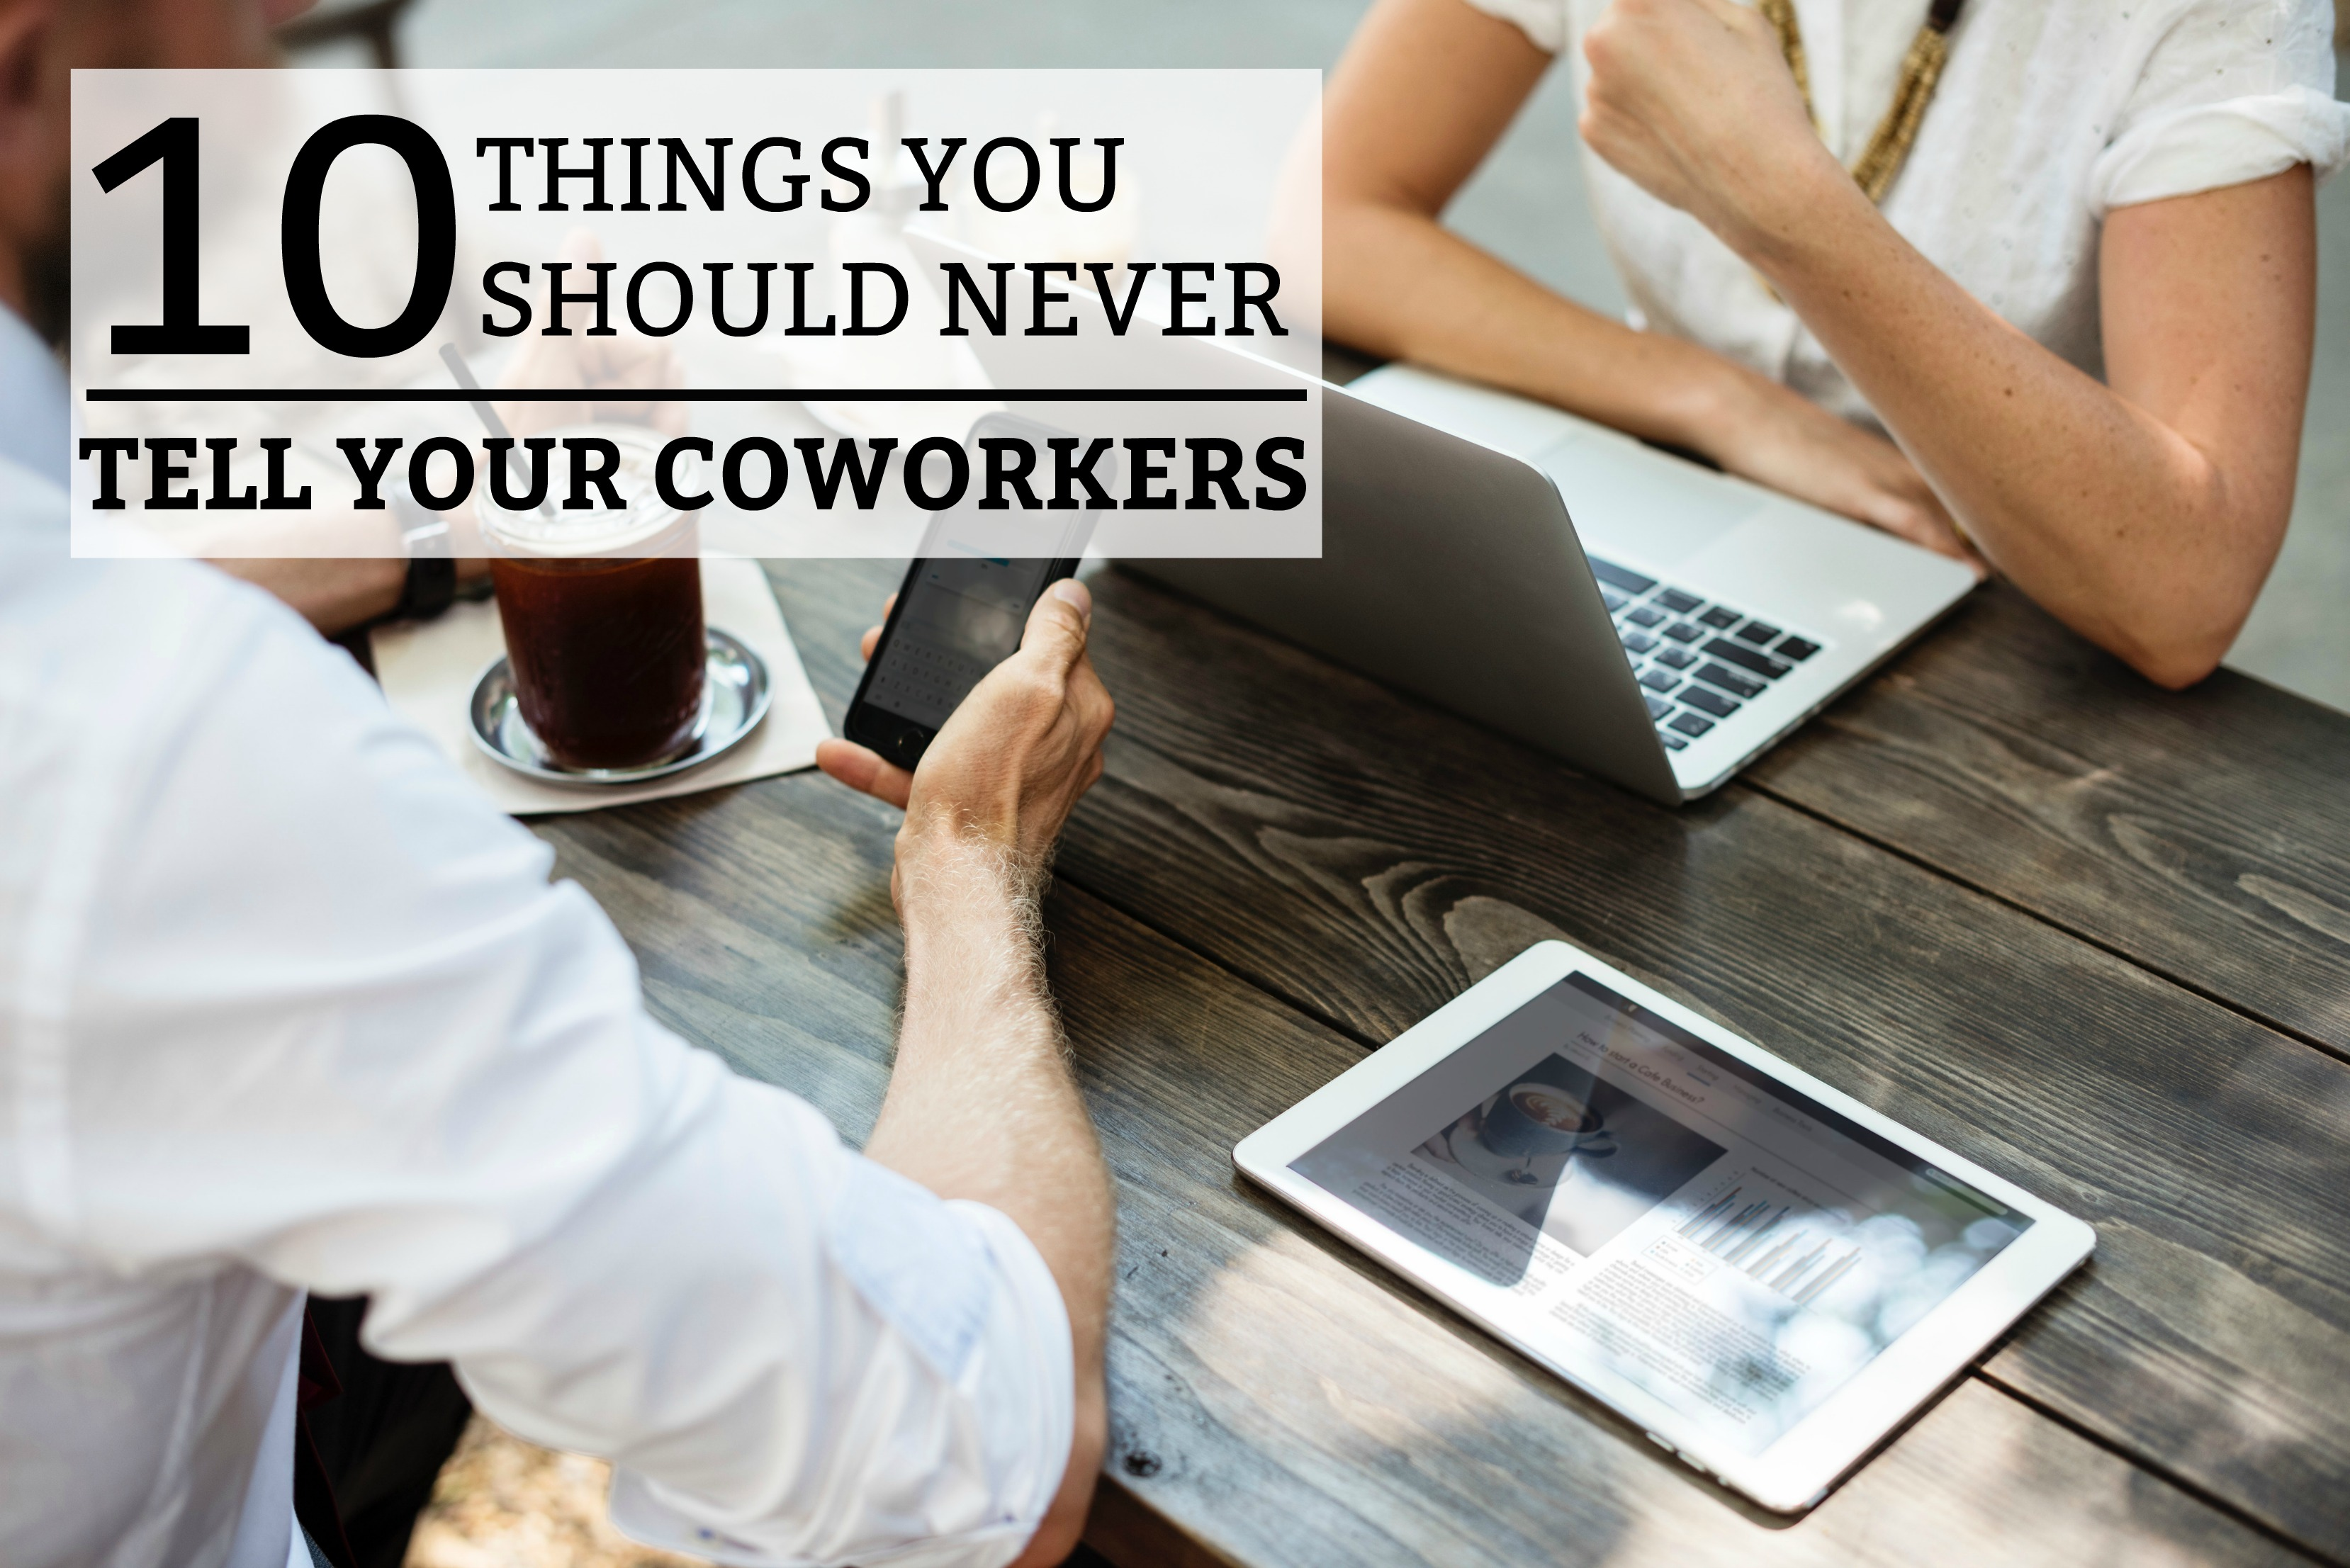 10 Things You Should Never, Ever Tell Your Coworkers - a practical guide on staying out of trouble in your workplace. Important tips on what you never mention to your coworker. www.tradingaverage.com